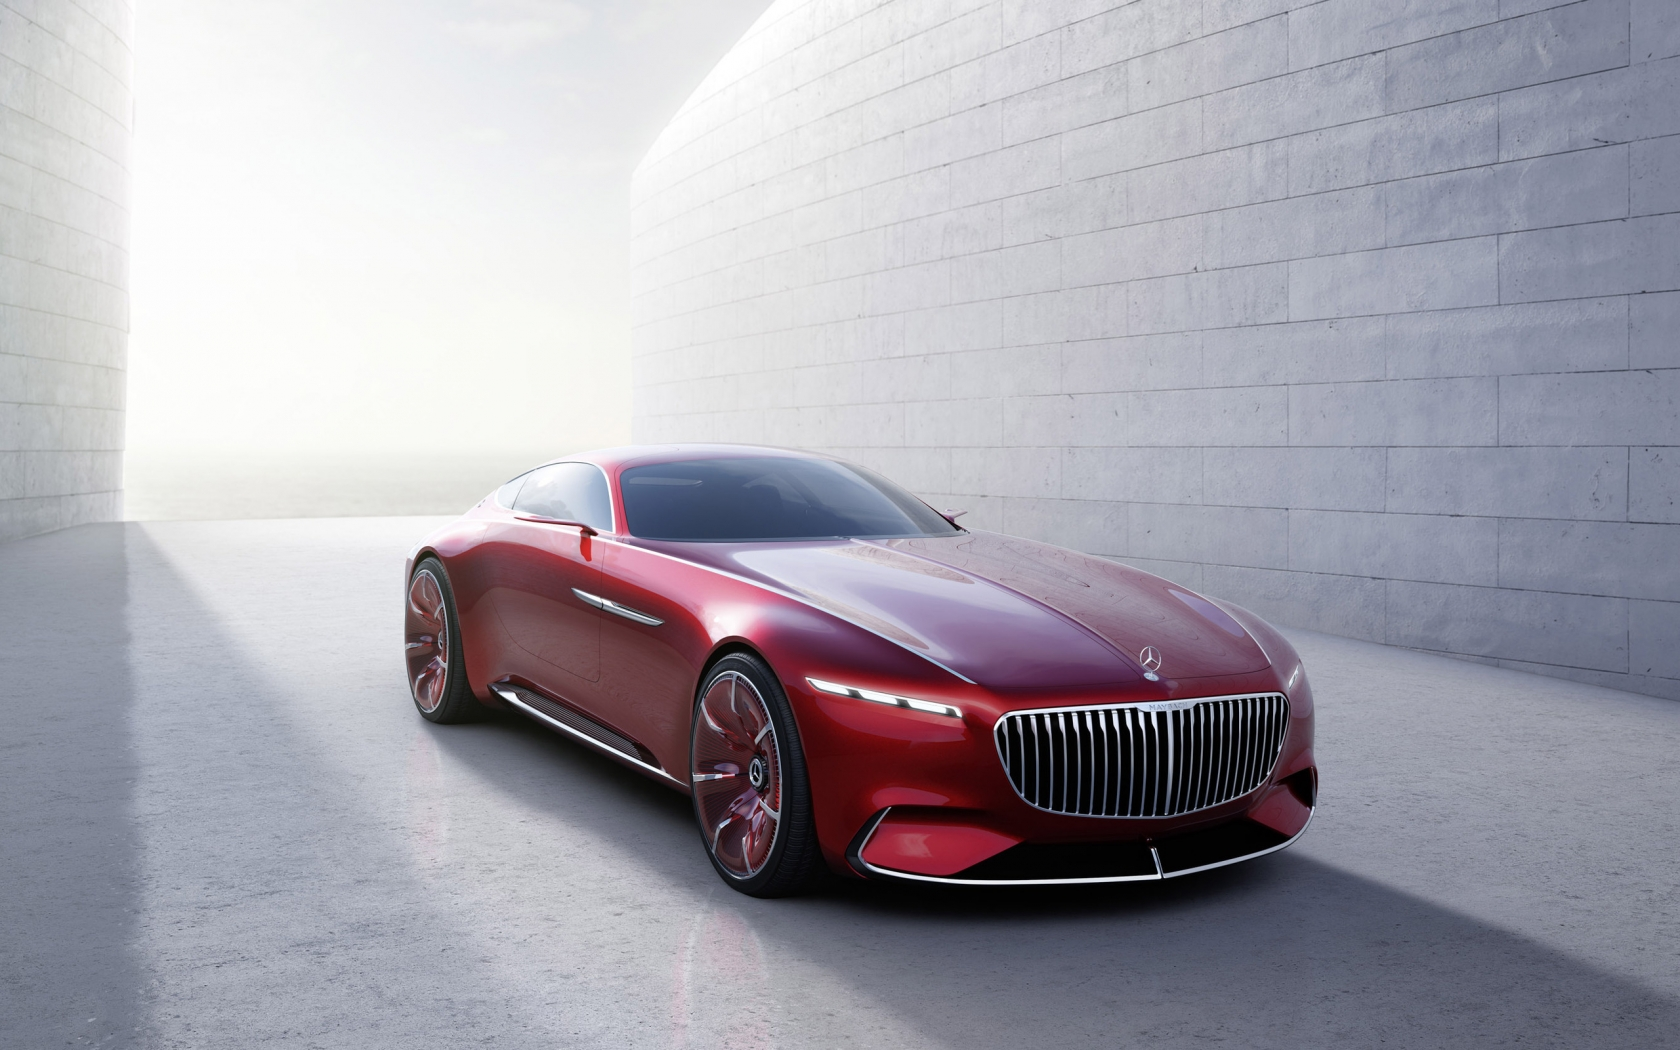 Maybach 6 2016 Concept Car for 1680 x 1050 widescreen resolution